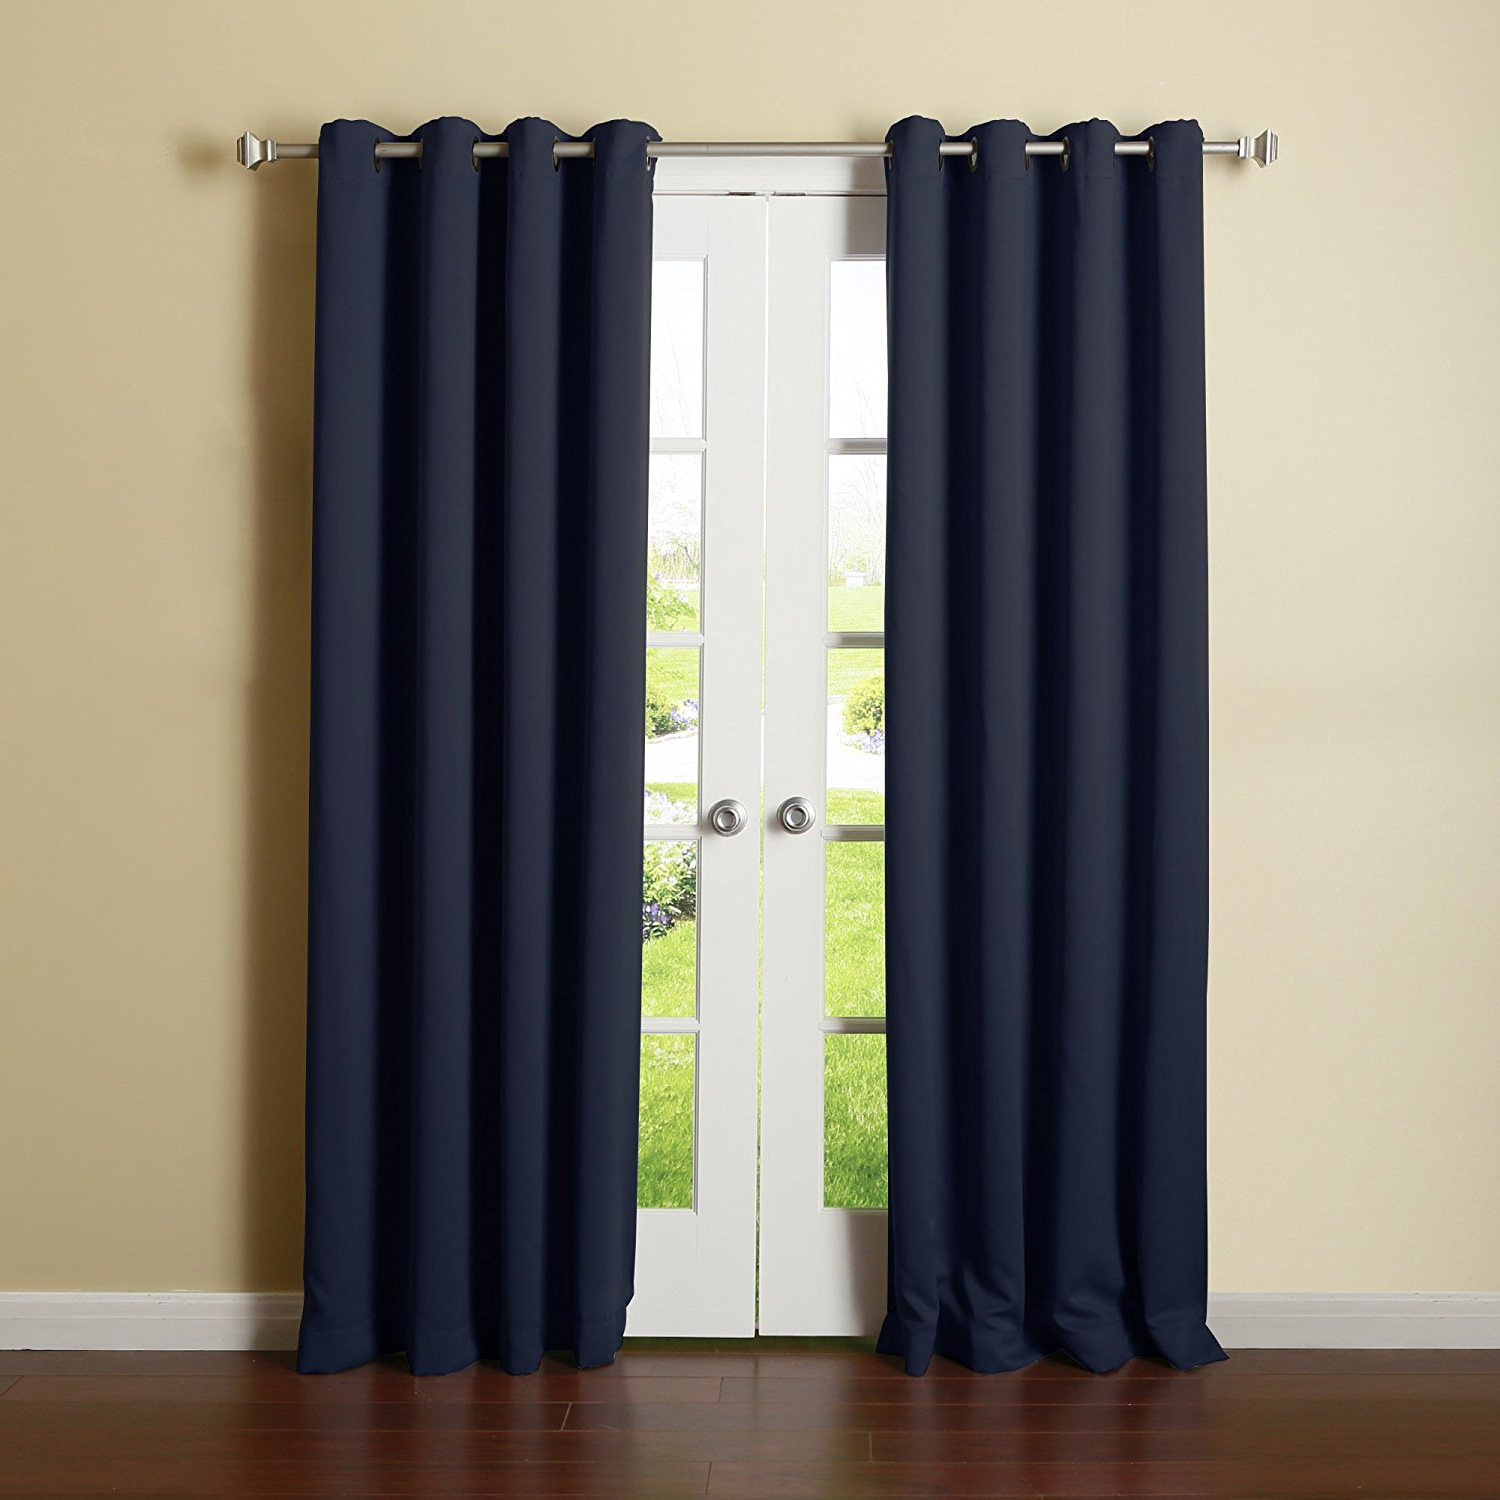 Preferred Antique Silver Grommet Top Thermal Insulated Blackout Curtain Panel Pairs Throughout Thermal Blackout Curtains For The Whole House – Blogbeen (View 16 of 20)